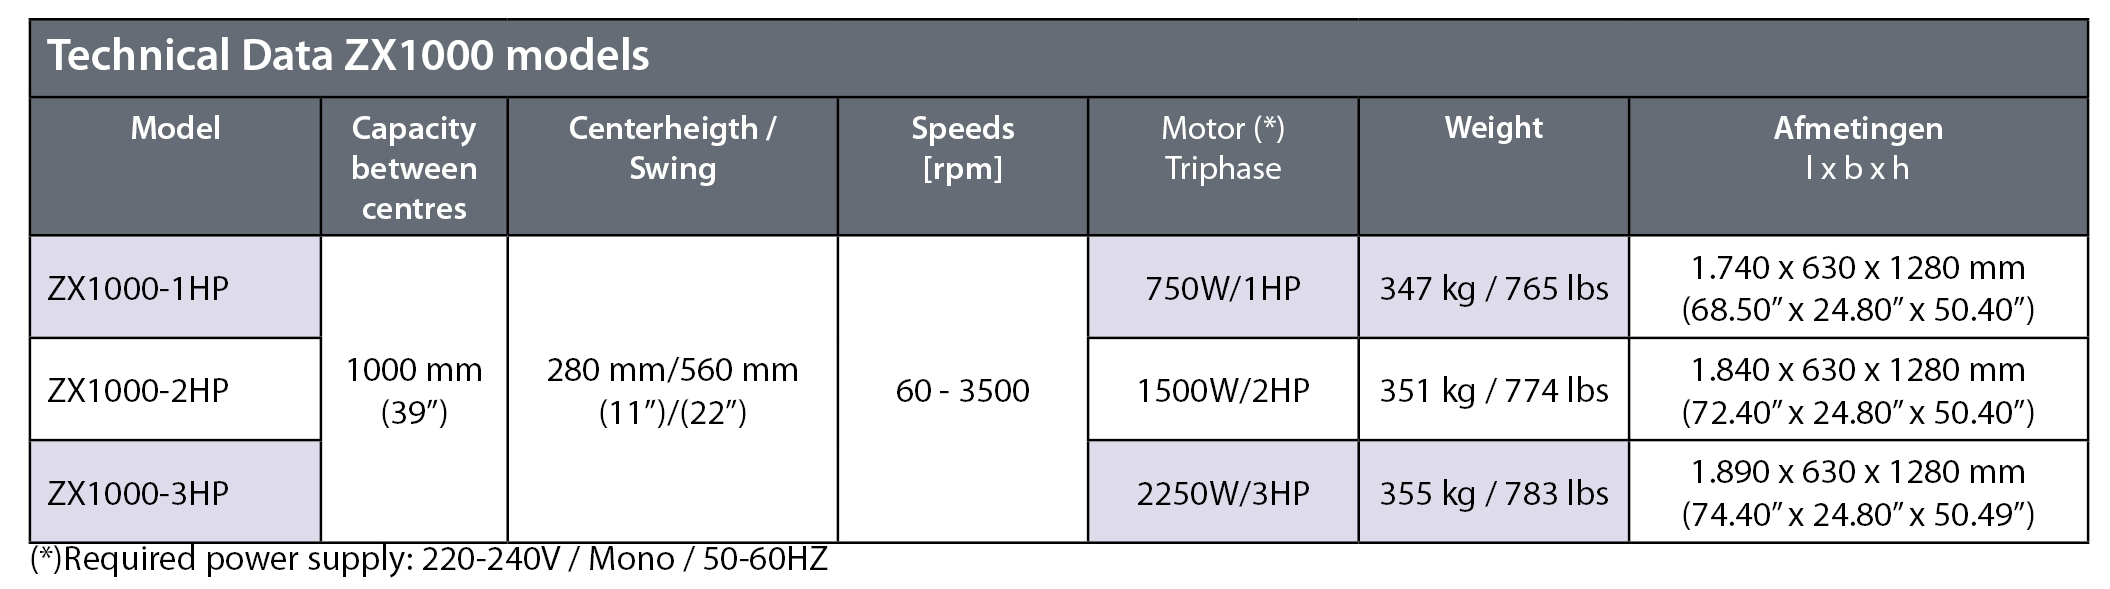 Technical data ZX1000 models